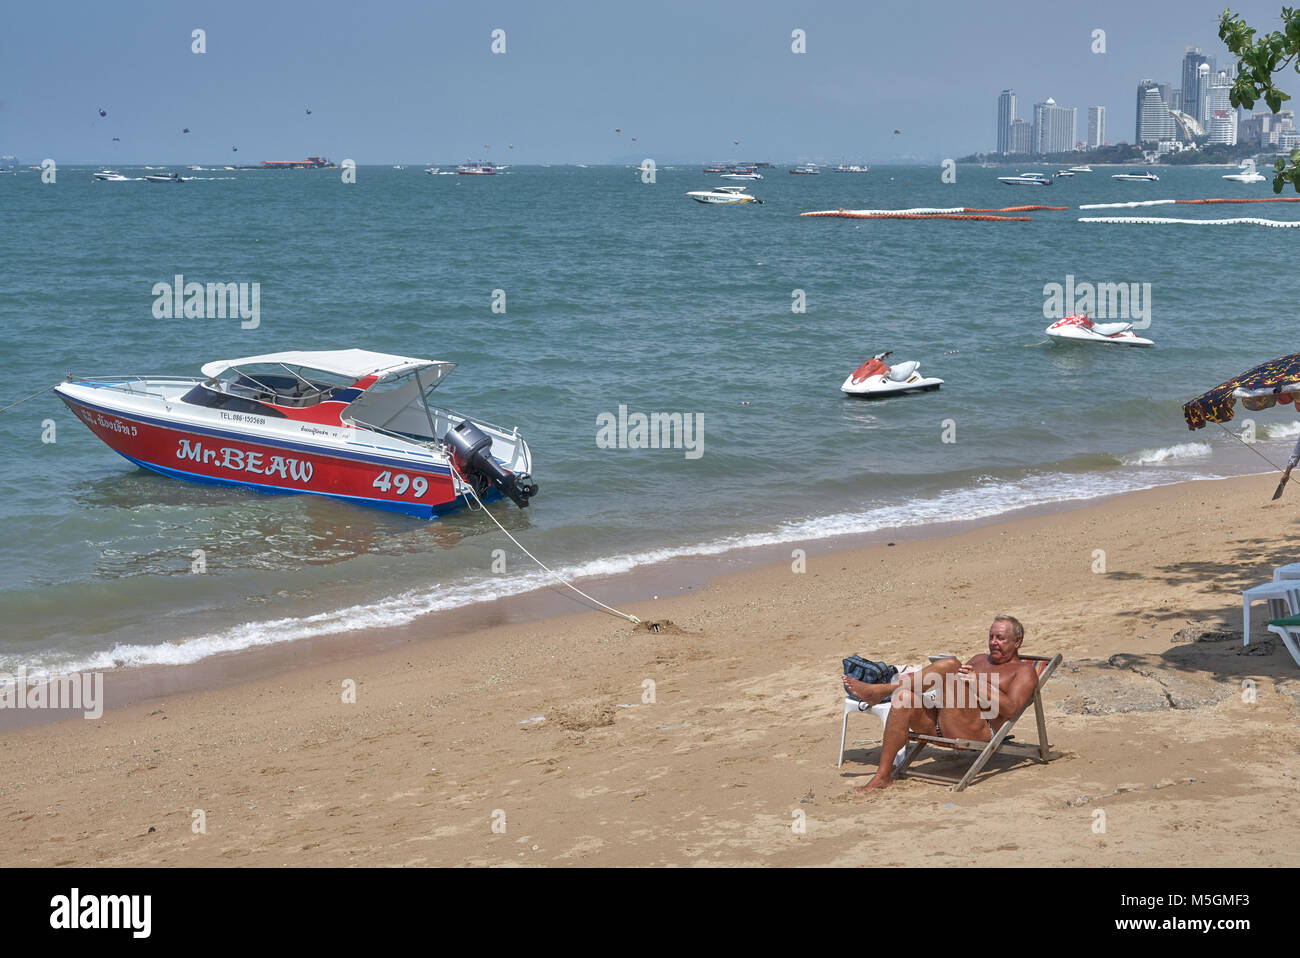 Man relaxing alone on the beach. Pattaya beach, Thailand, Southeast Asia. - Stock Image